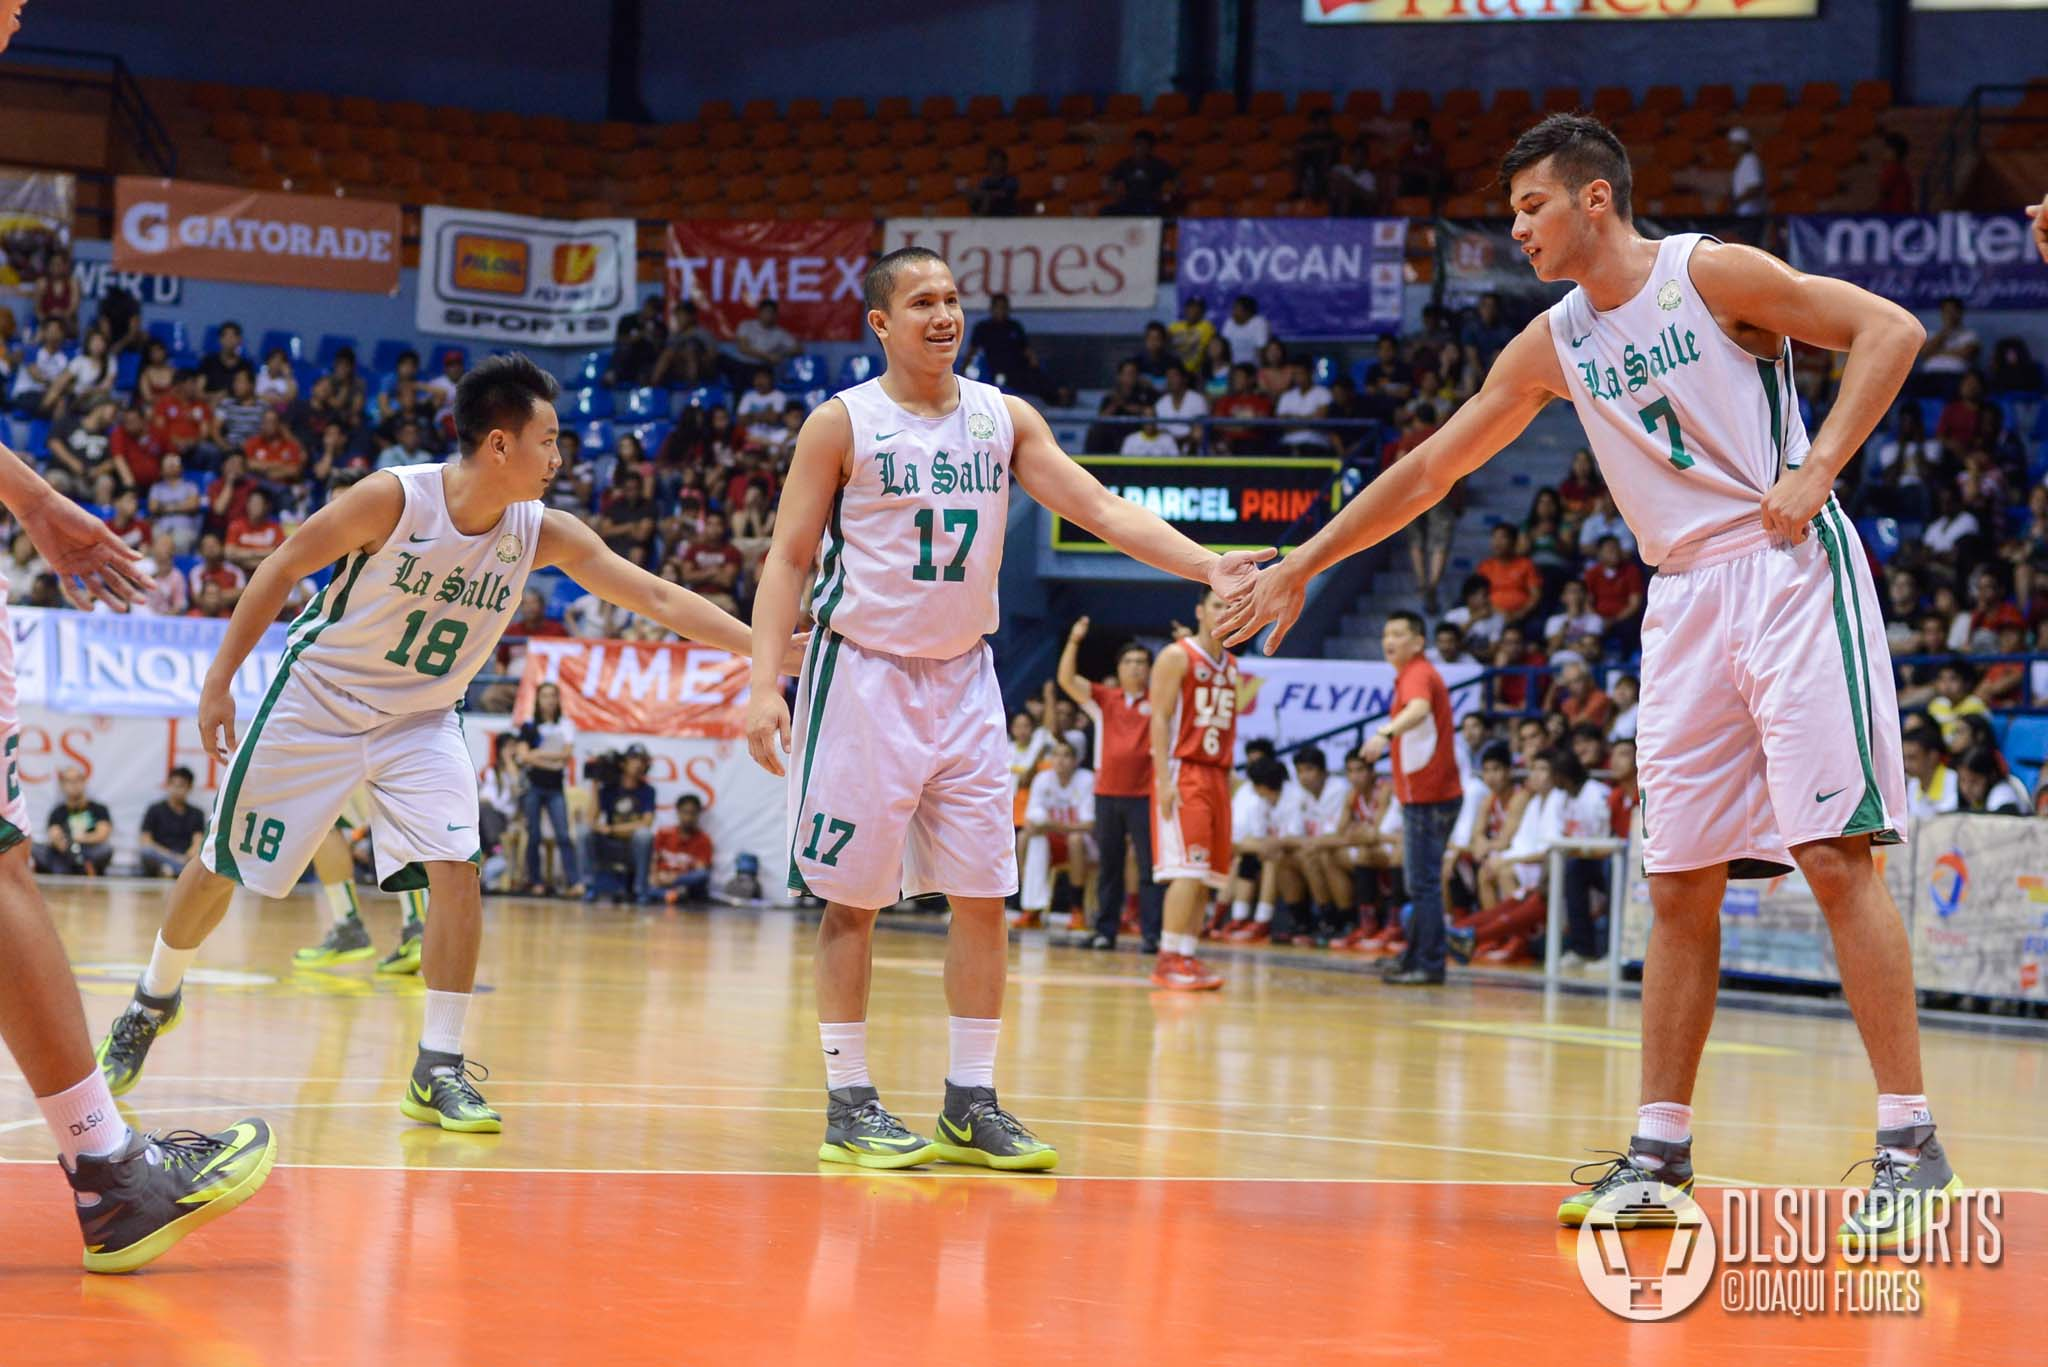 Thomas Torres (left) and Arnold van Opstal (right) tapos Almond Vosotros (middle) after making a free throw.